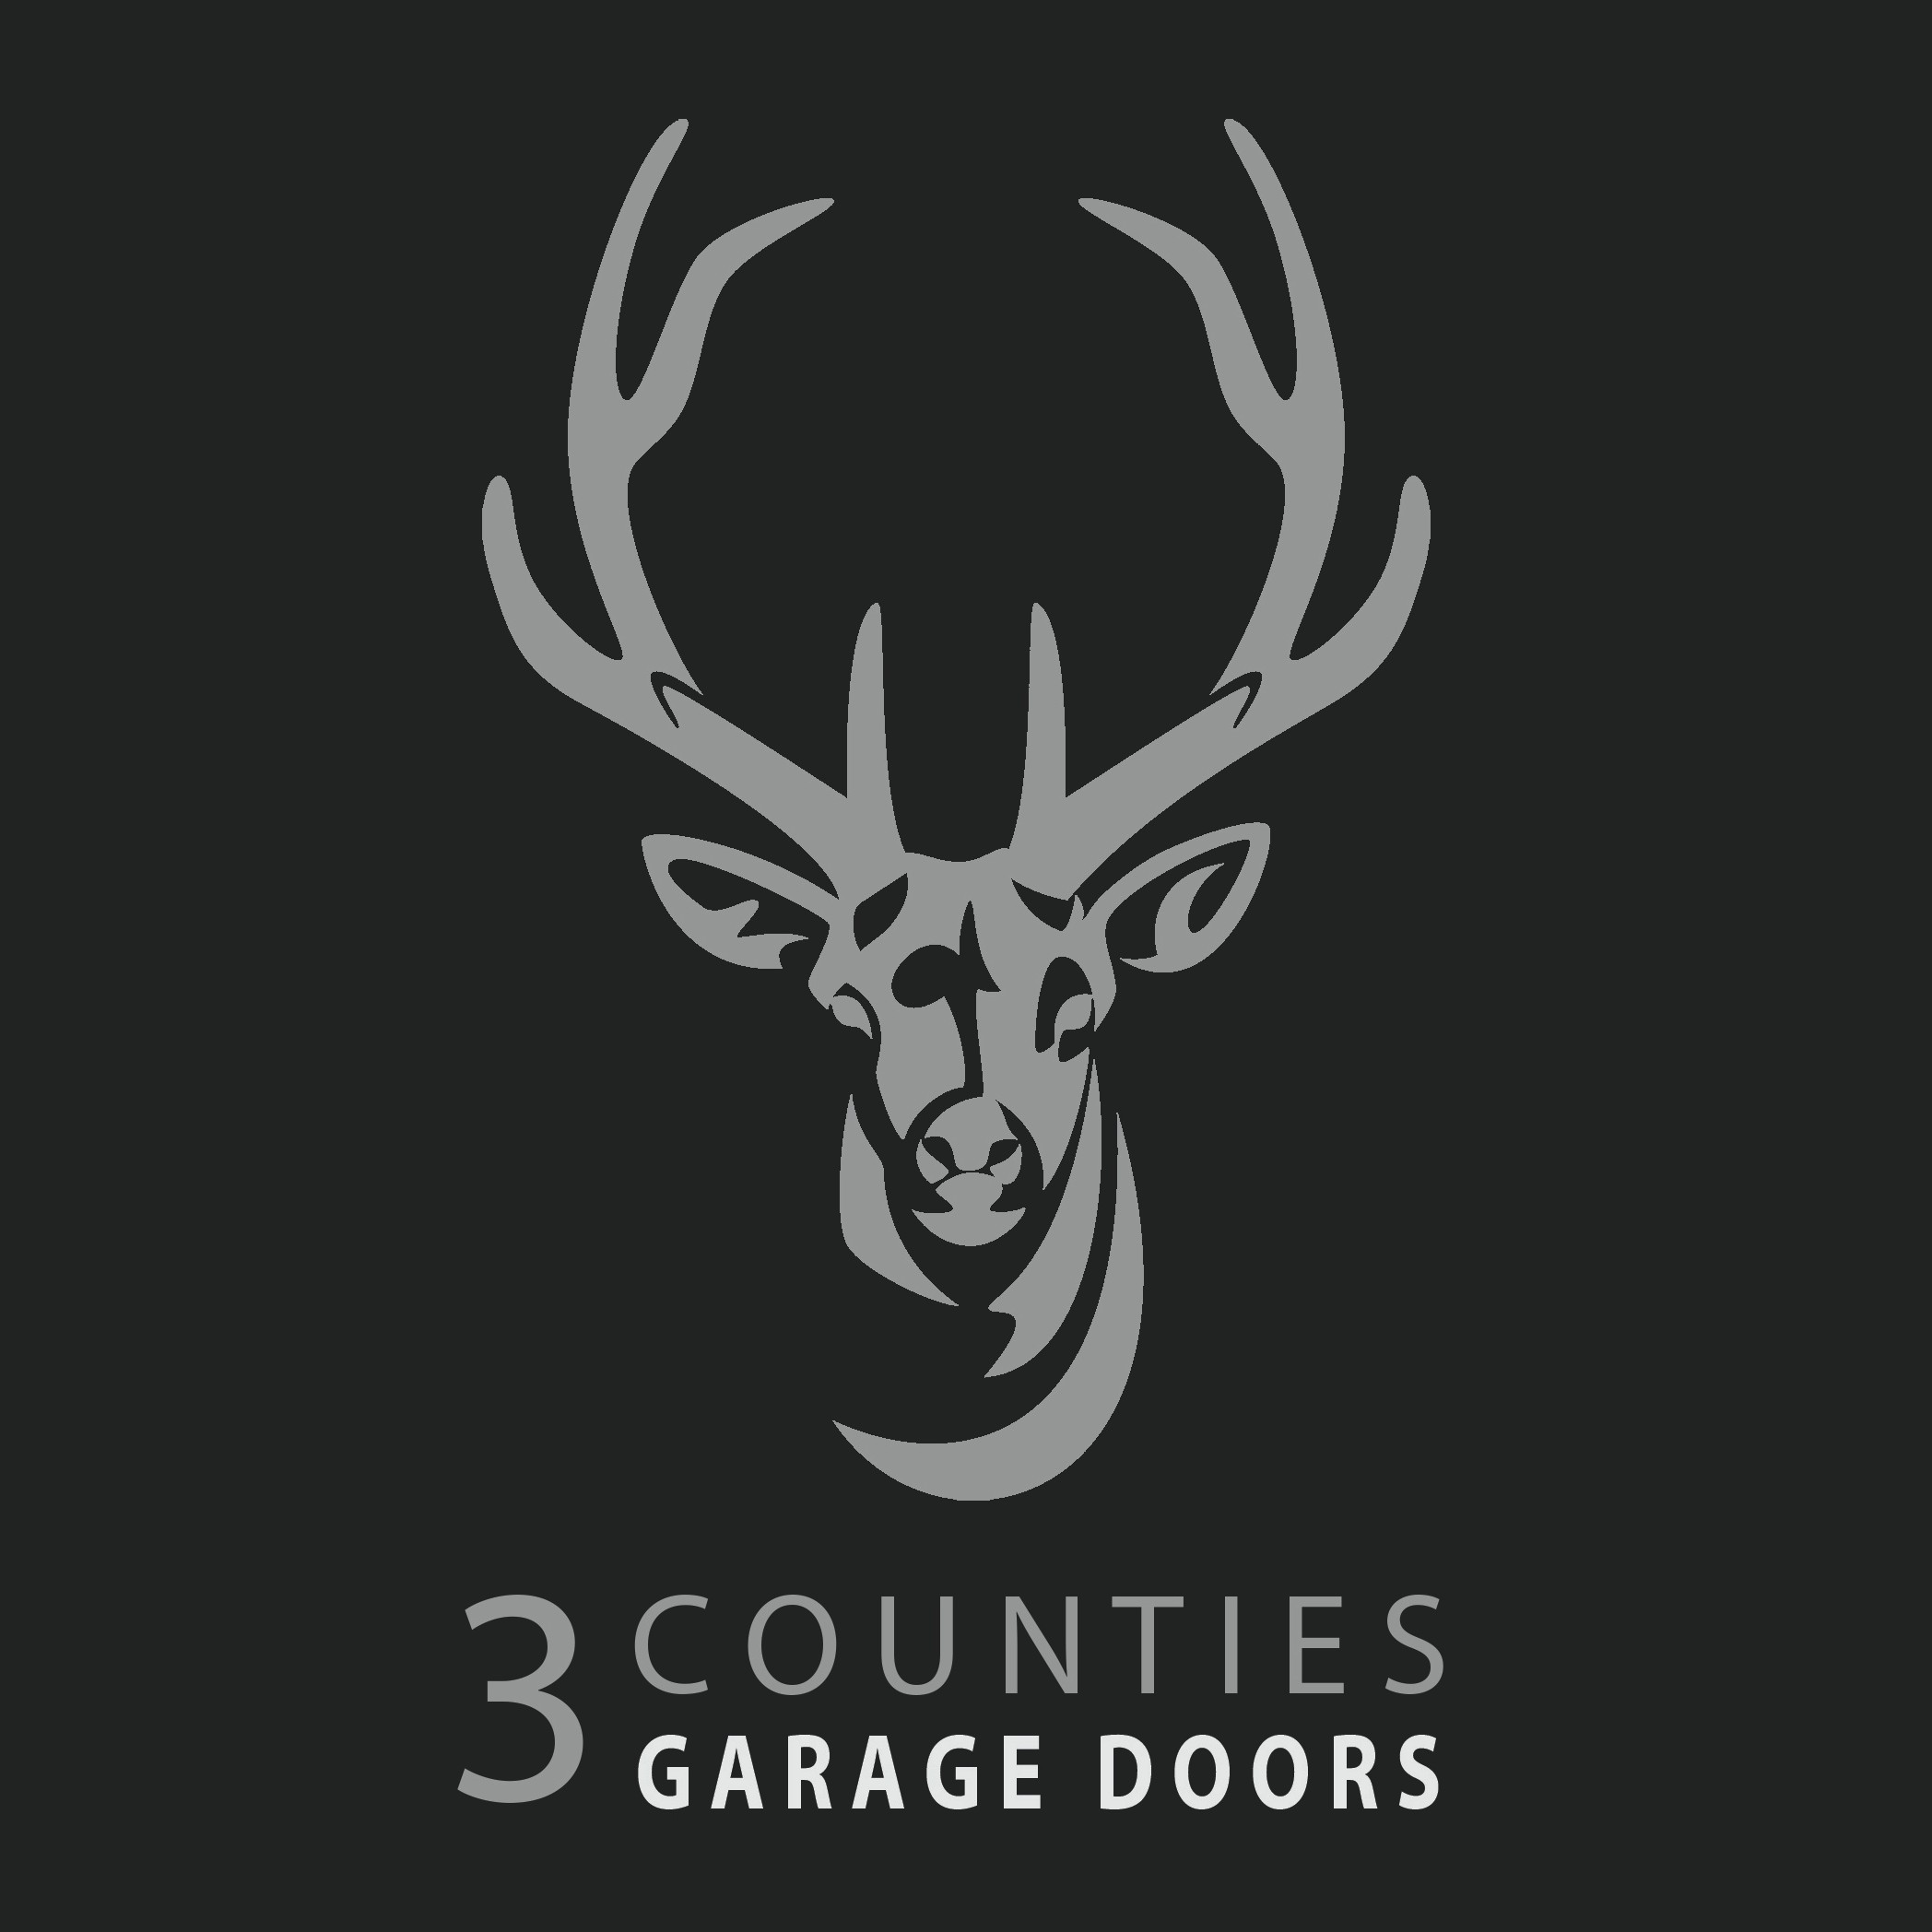 3 Counties Garage Doors